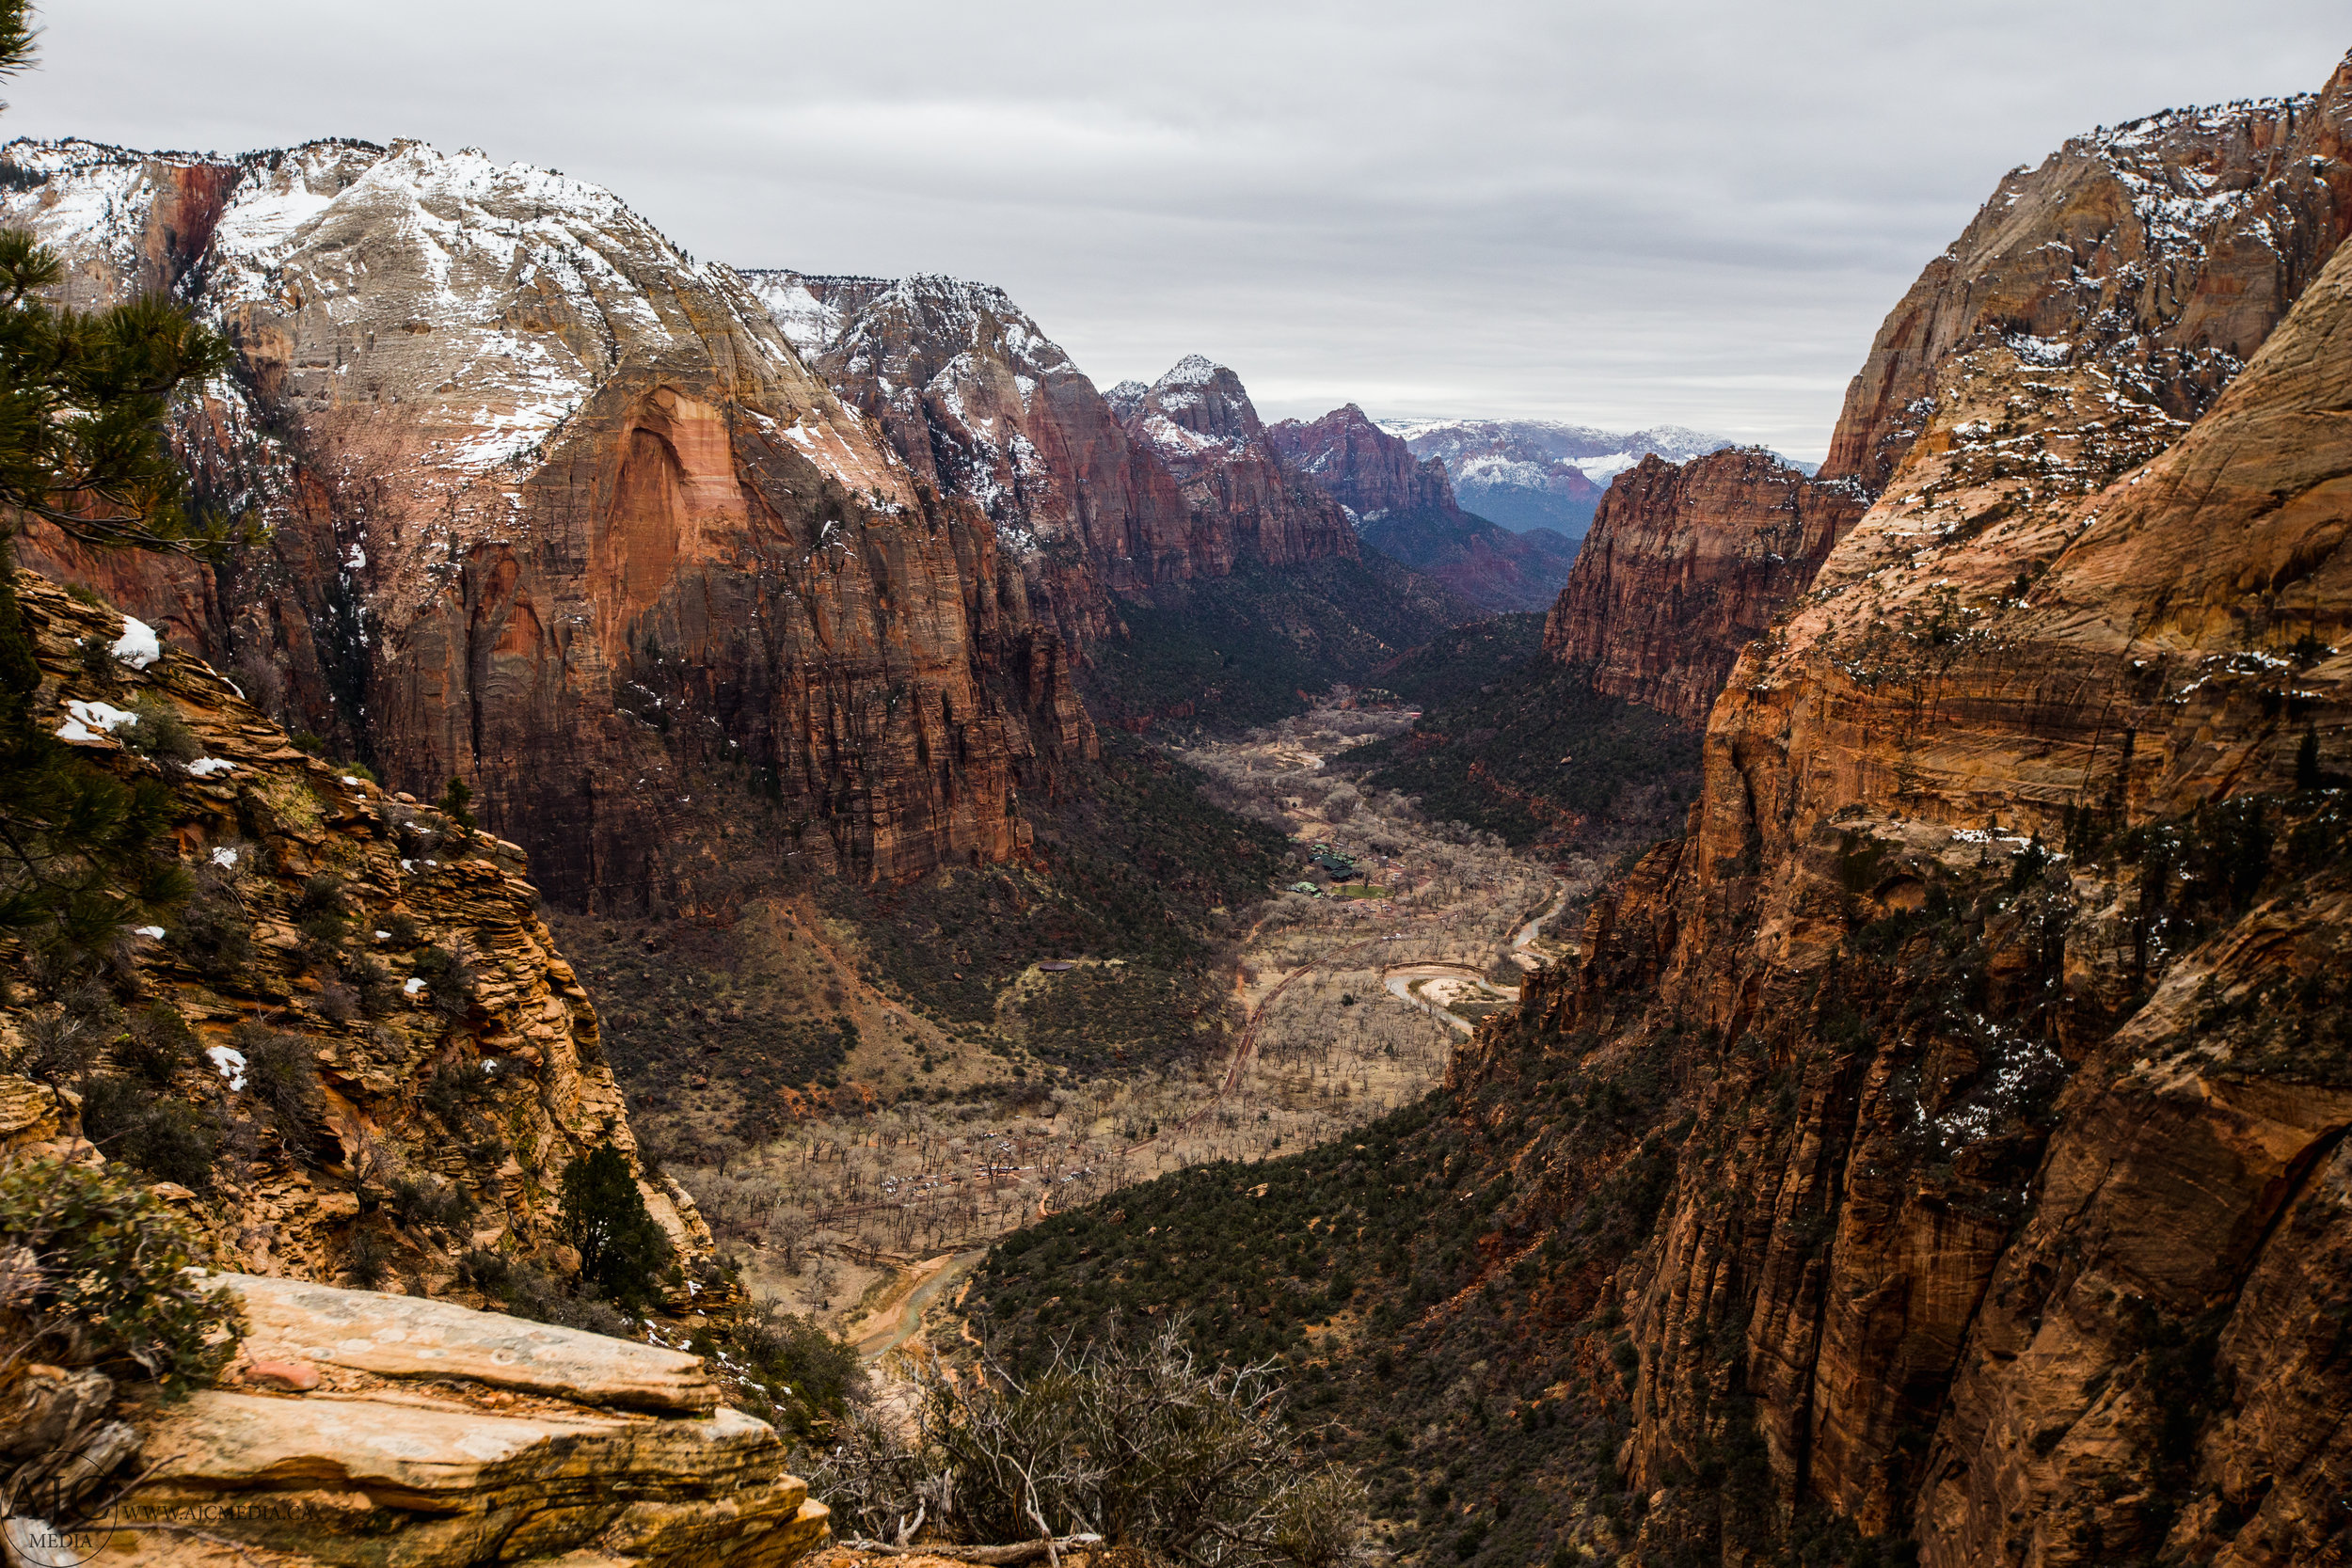 There it is, Zion National Park.